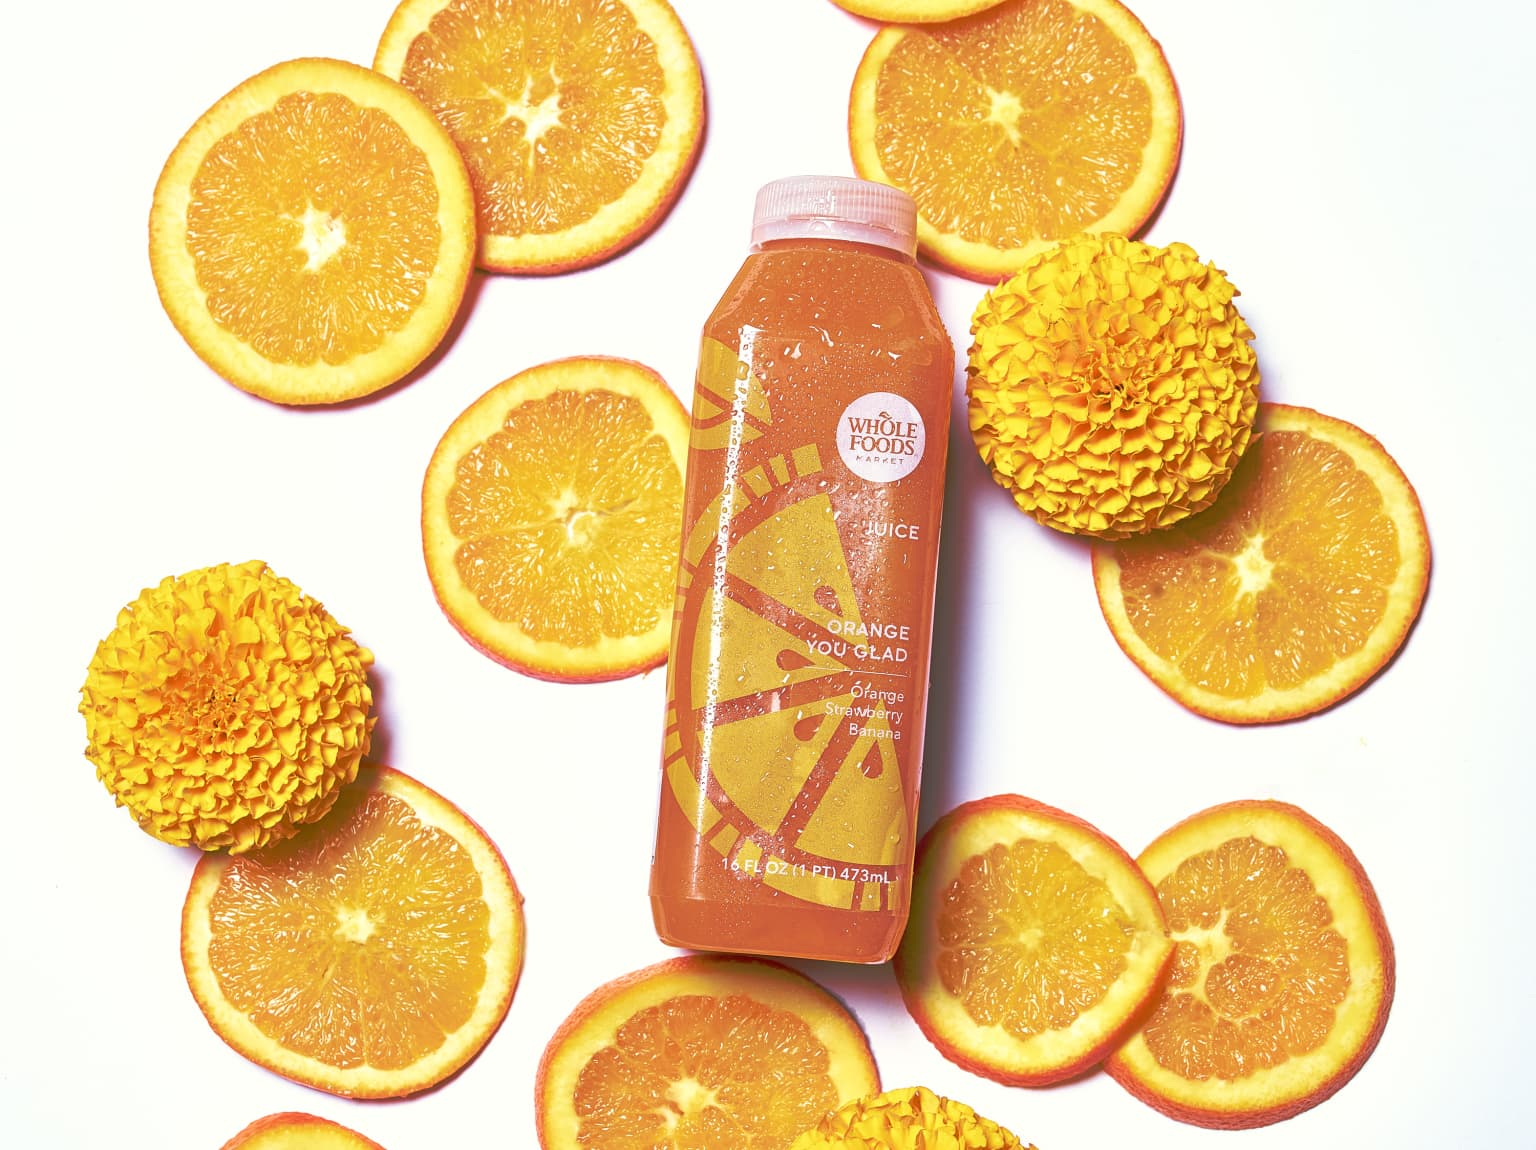 Whole Foods Juice Product Shoot